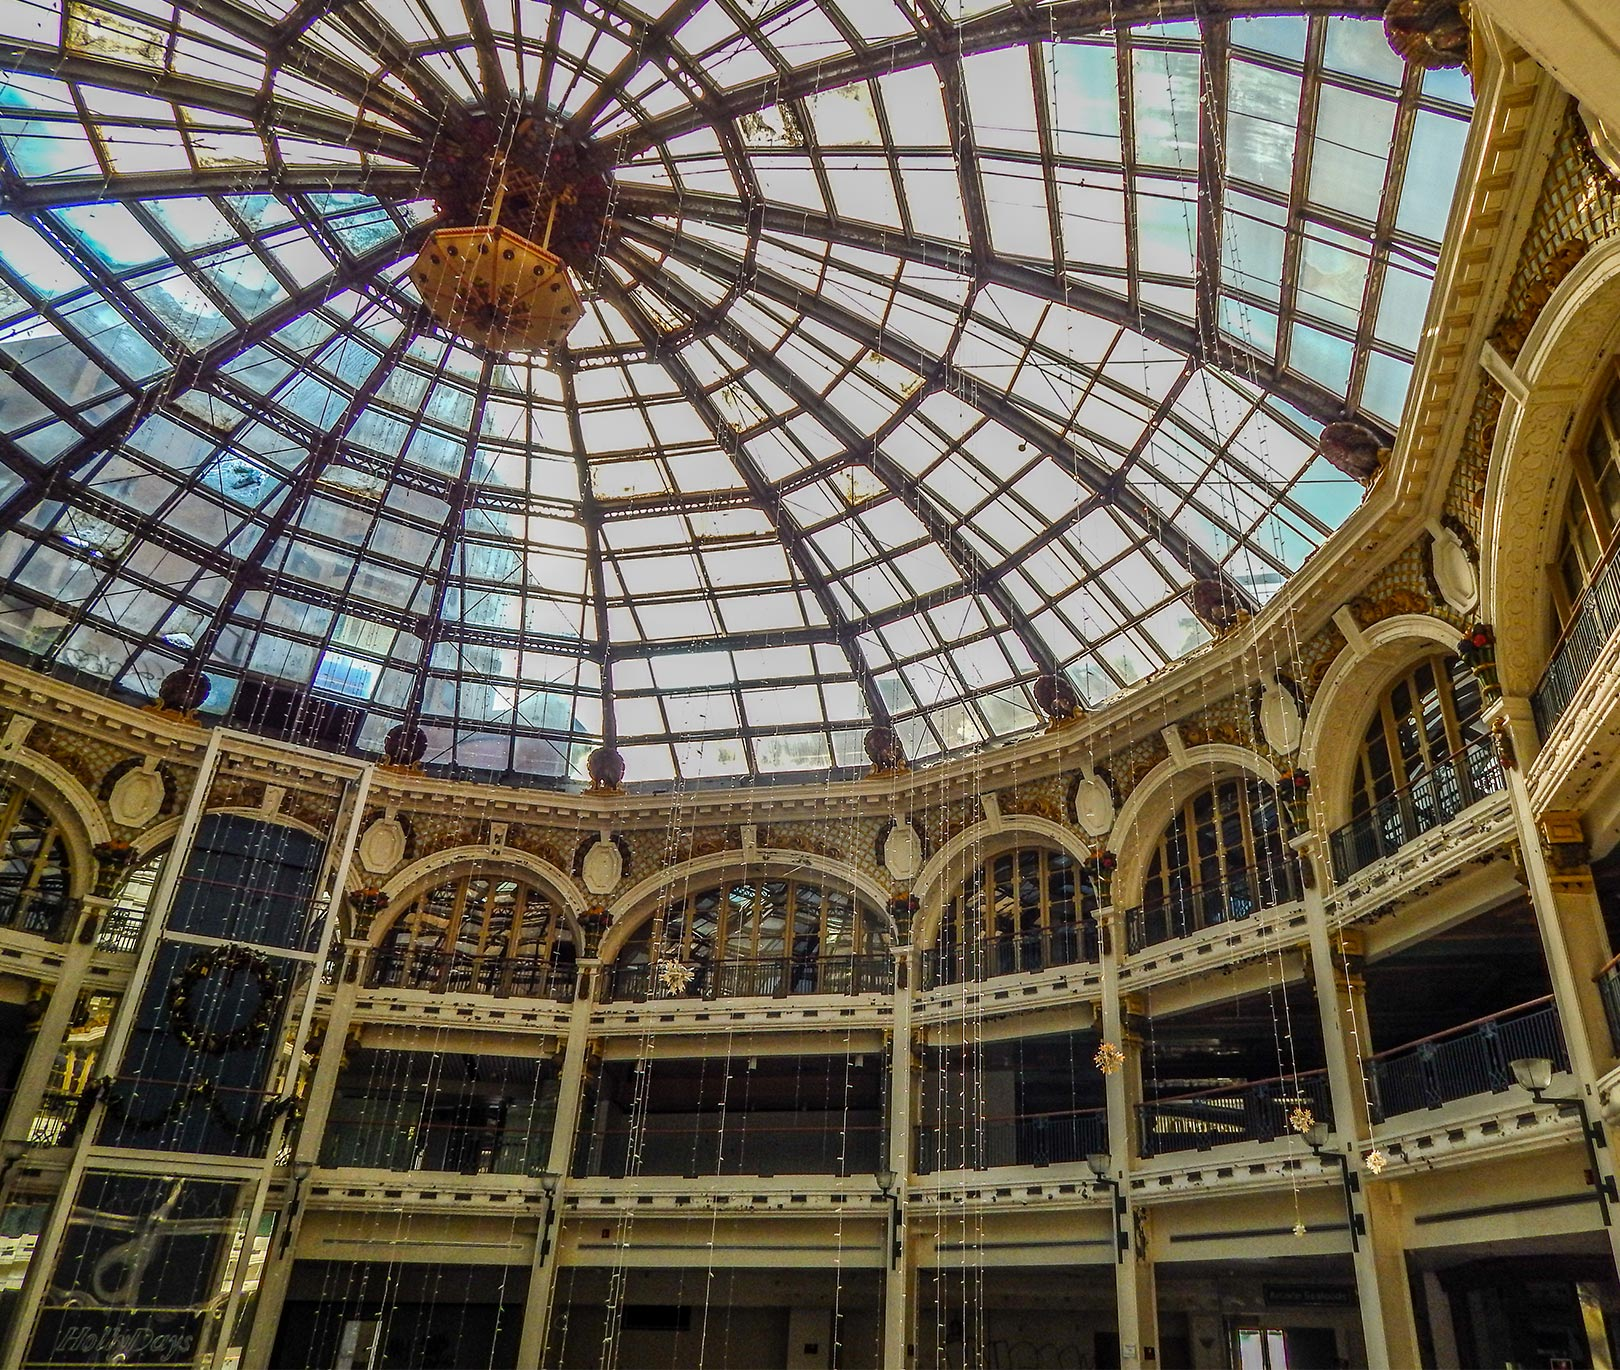 Glass dome in the rotunda of the Dayton Arcade